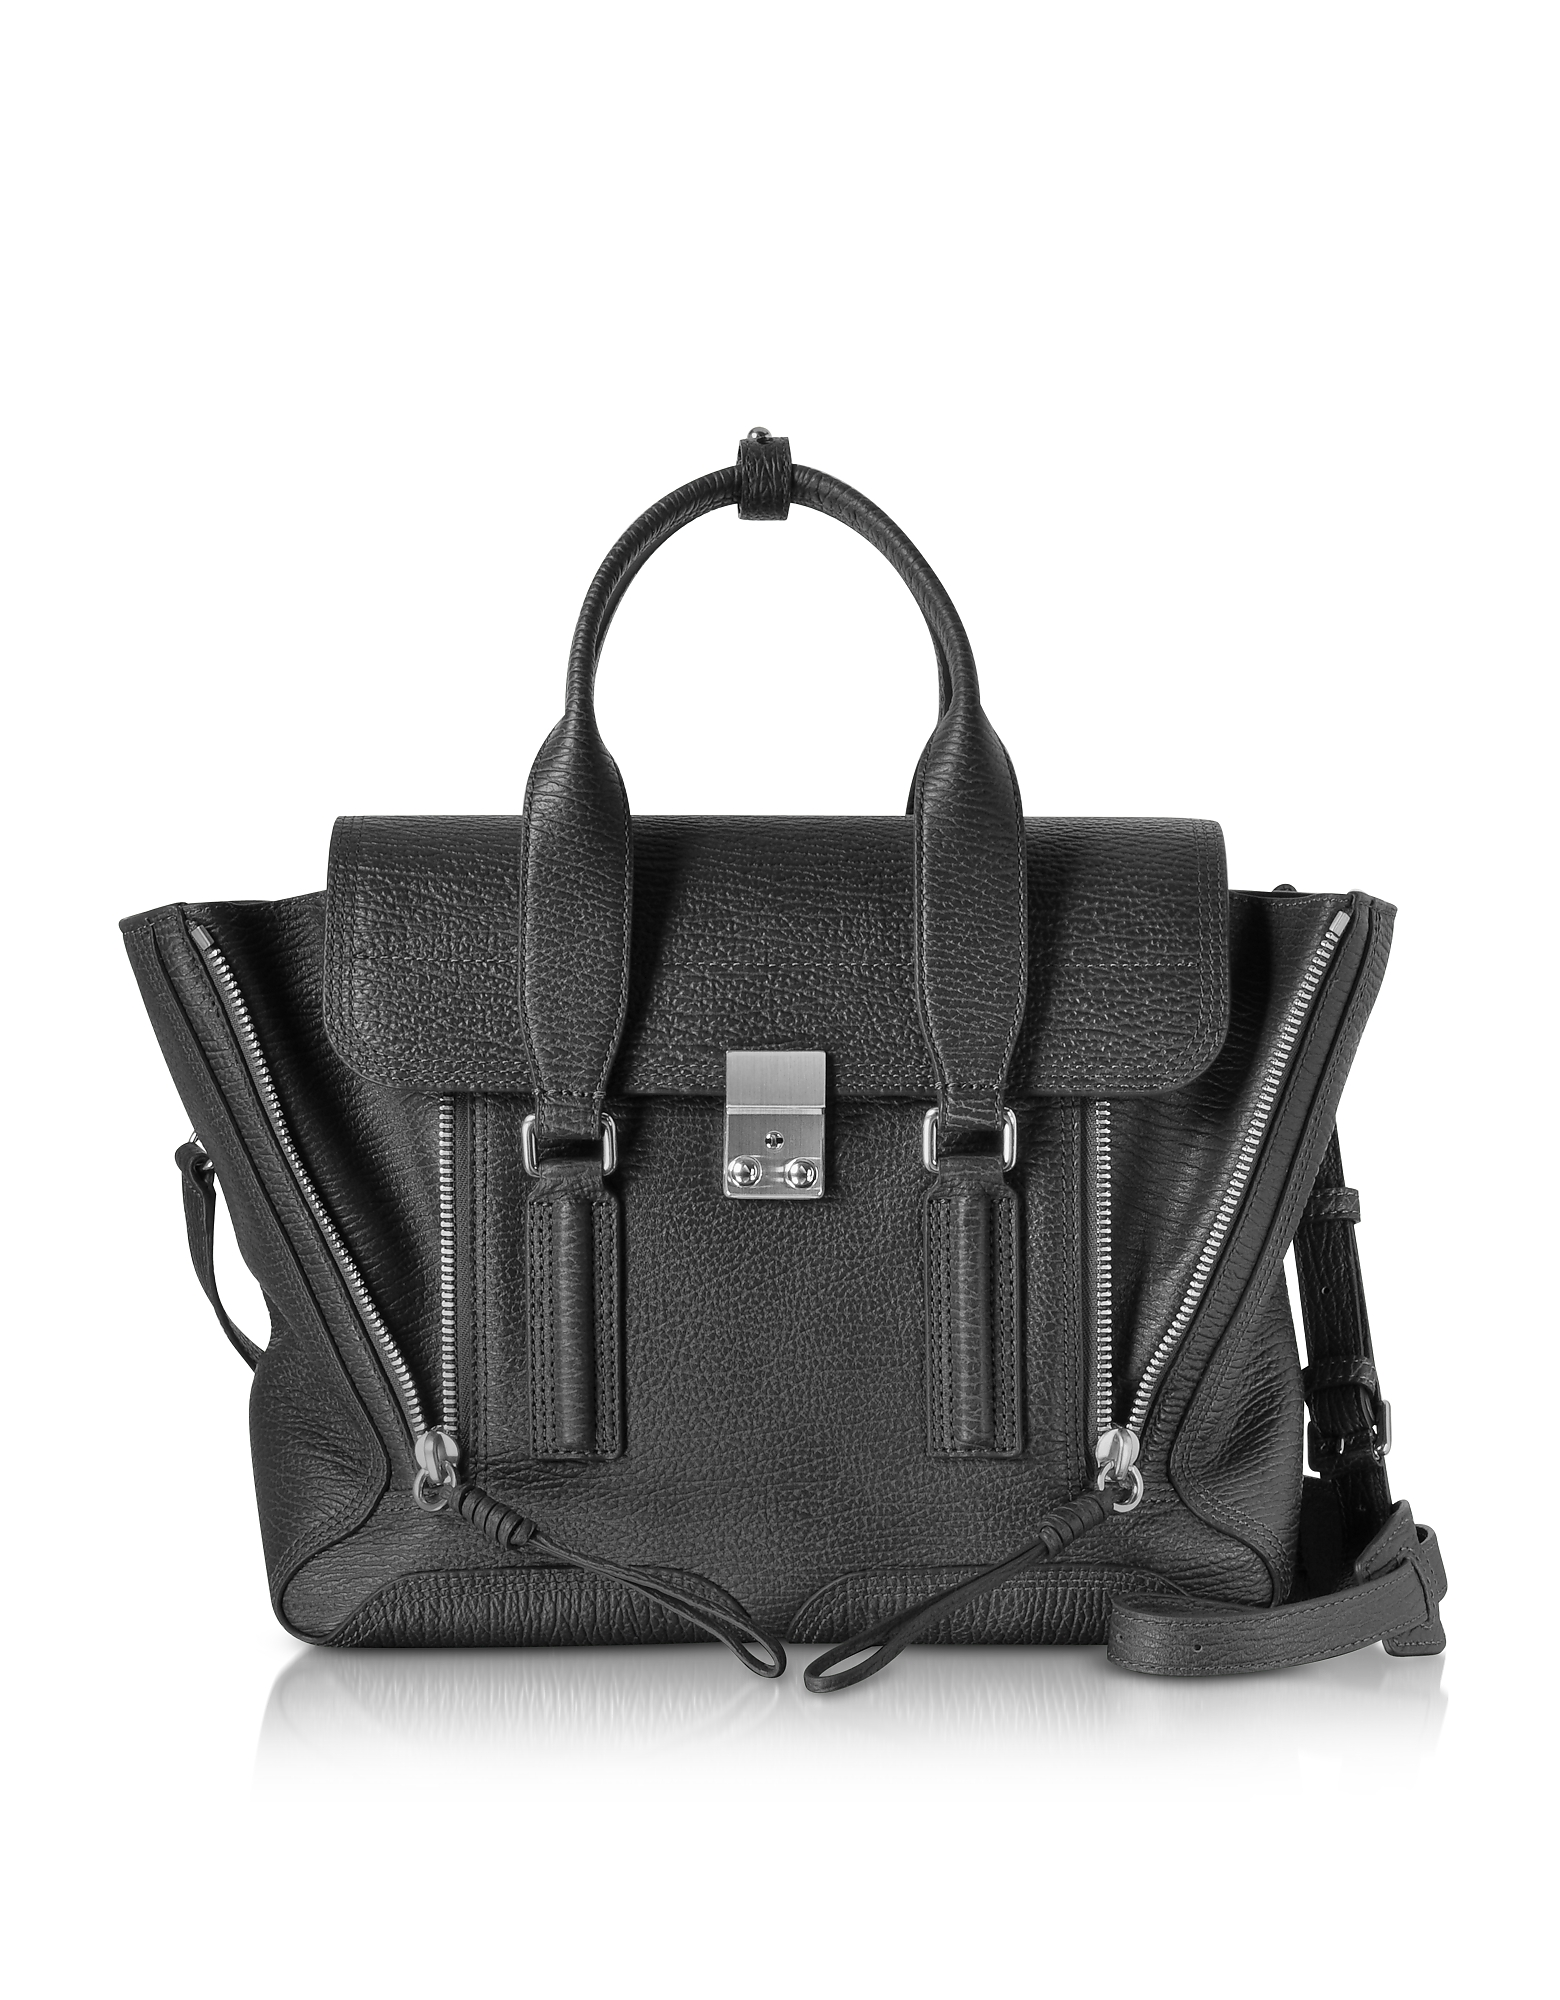 3.1 Phillip Lim Handbags, Black-Nickel Pashli Medium Satchel